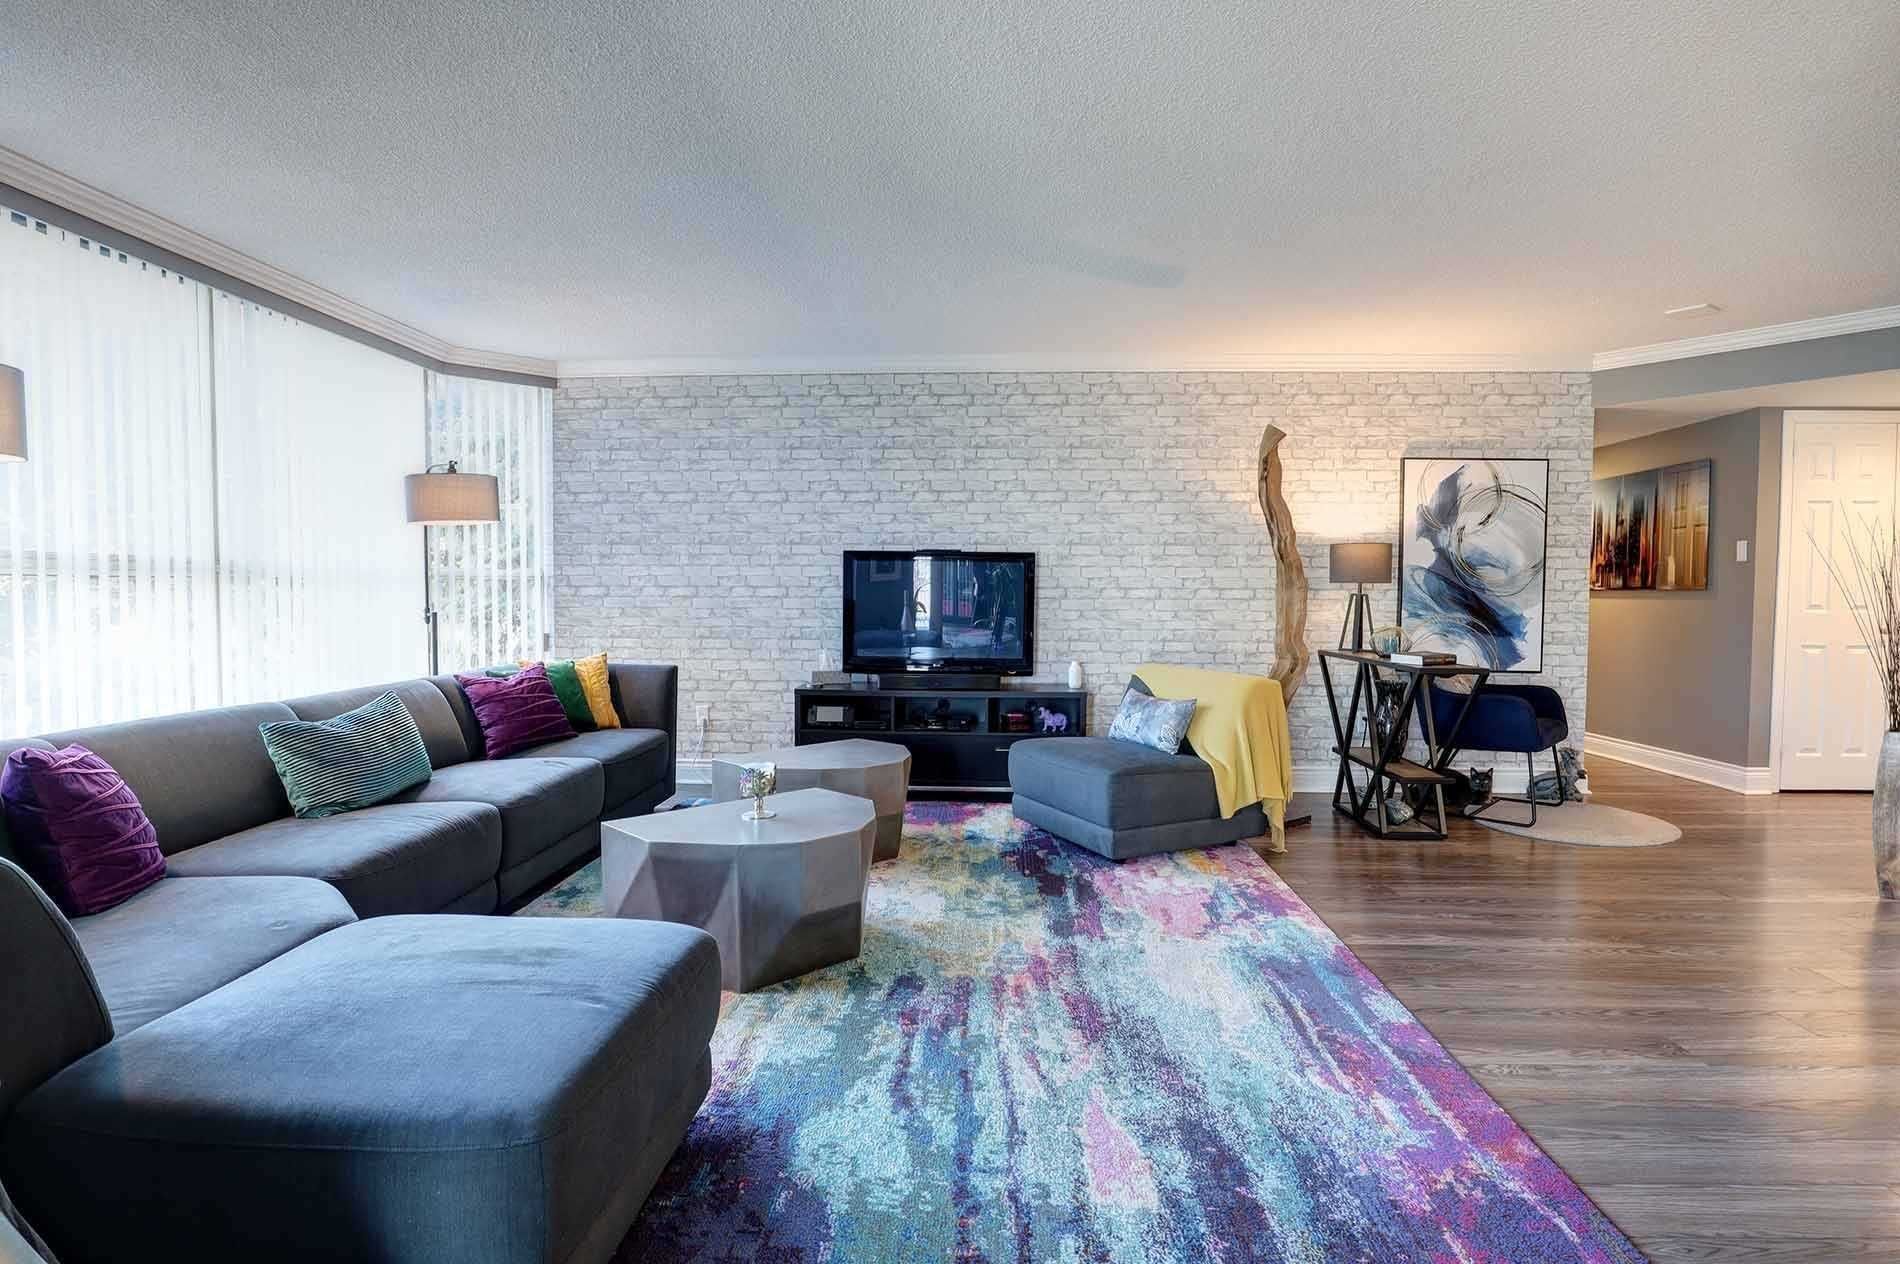 2091 Hurontario St, unit 205 for sale in Toronto - image #1